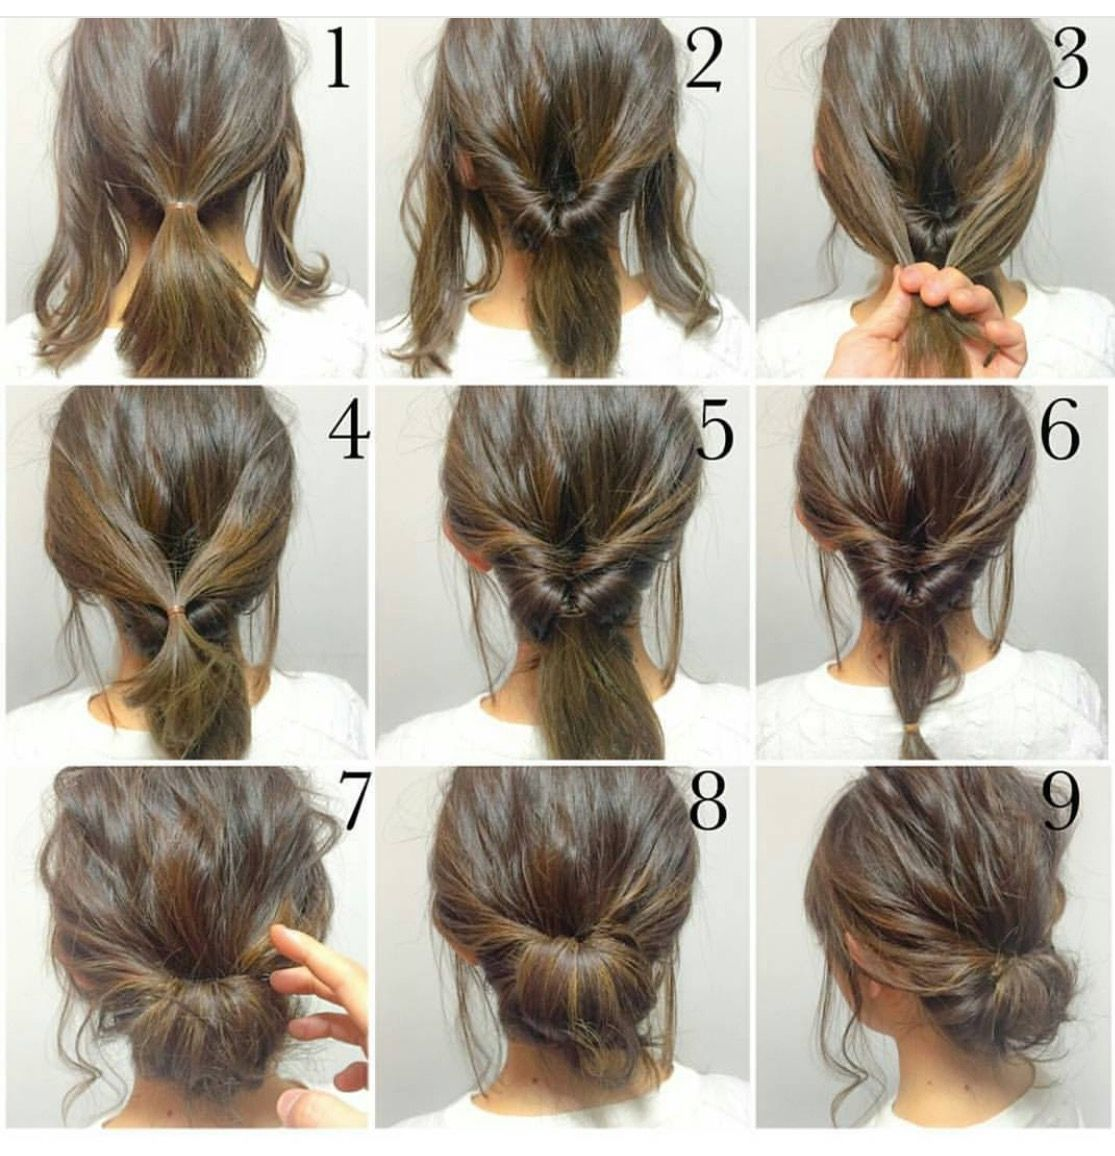 4 Messy Updos For Long Hair Trends4everyone Hair Styles Short Hair Styles Long Hair Styles